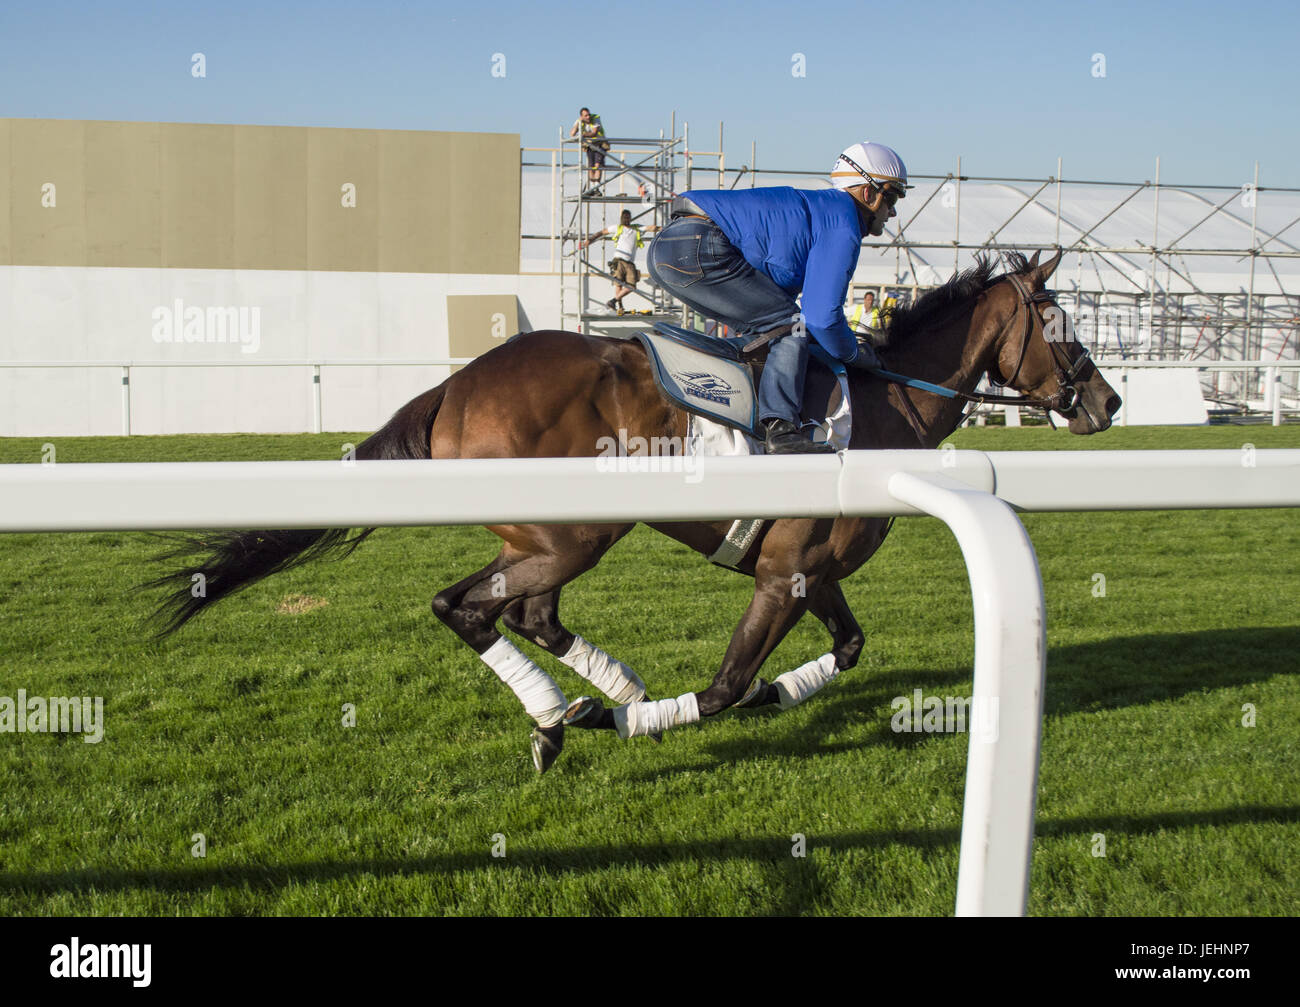 Trainer Kenny McPeek puts Investec Oaks contender racehorse 'Daddys Lil Darling' through her paces on the Epsom Downs racecourse track.  Featuring: Daddys Lil Darling, Olivier Peslier Where: Epsom, United Kingdom When: 26 May 2017 Stock Photo